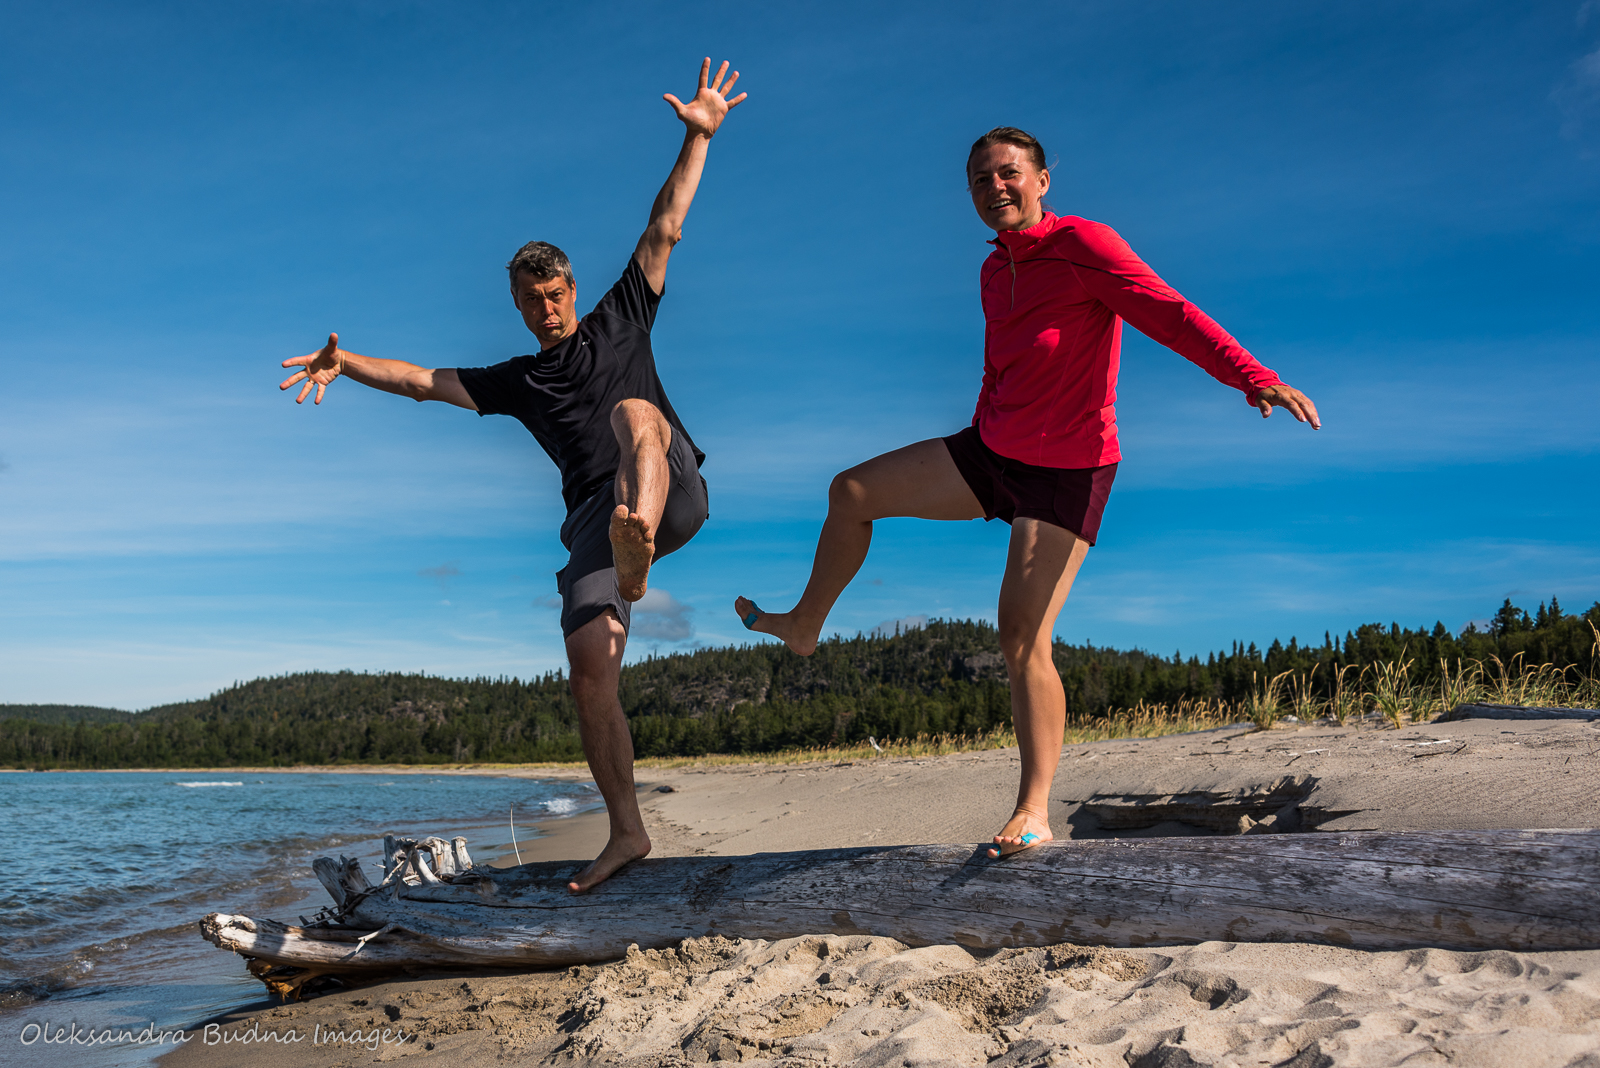 taking silly photos at Oiseau Bay in Pukaskwa